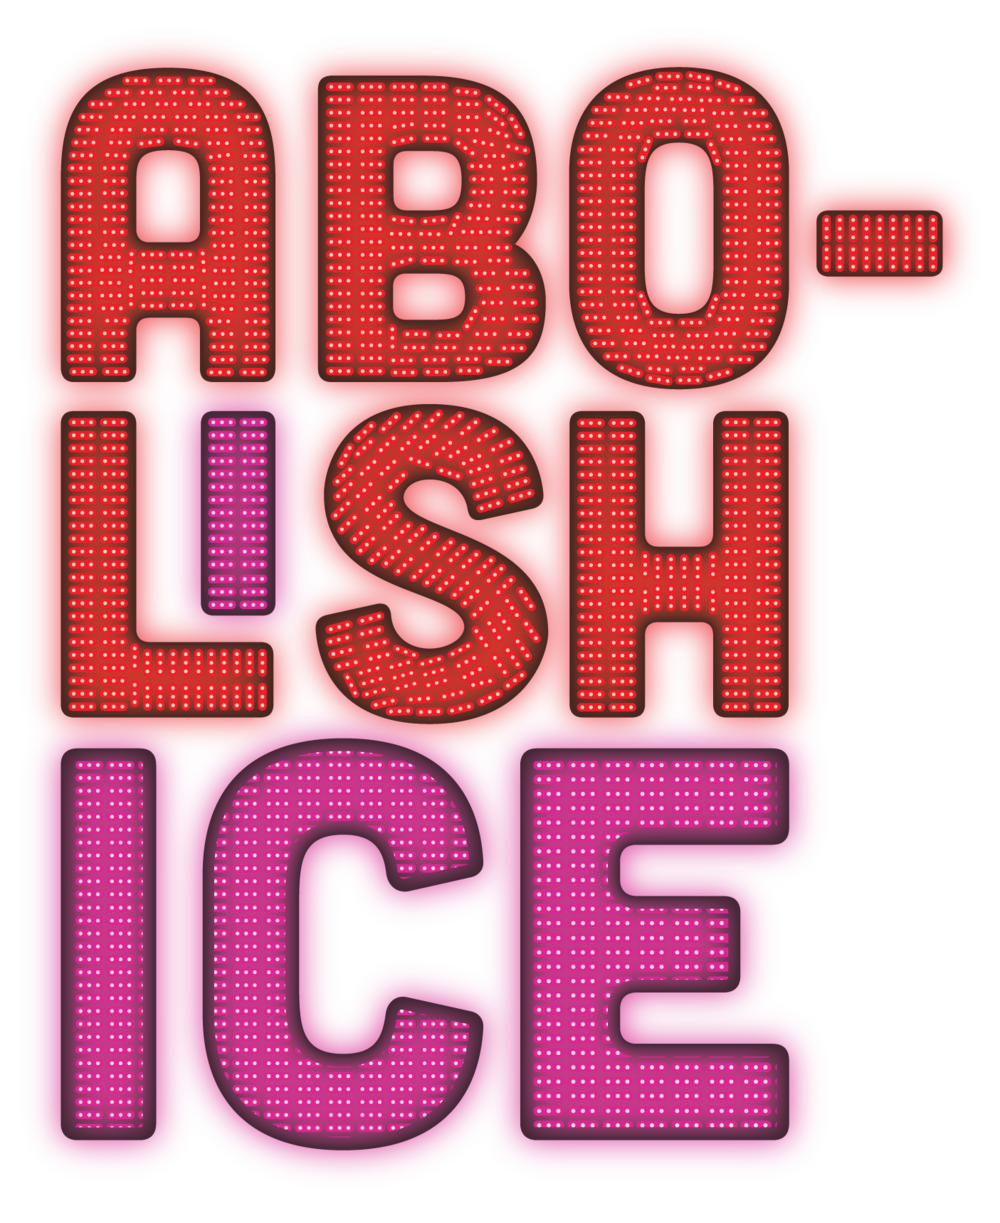 Abolish ICE - lights-both.jpg